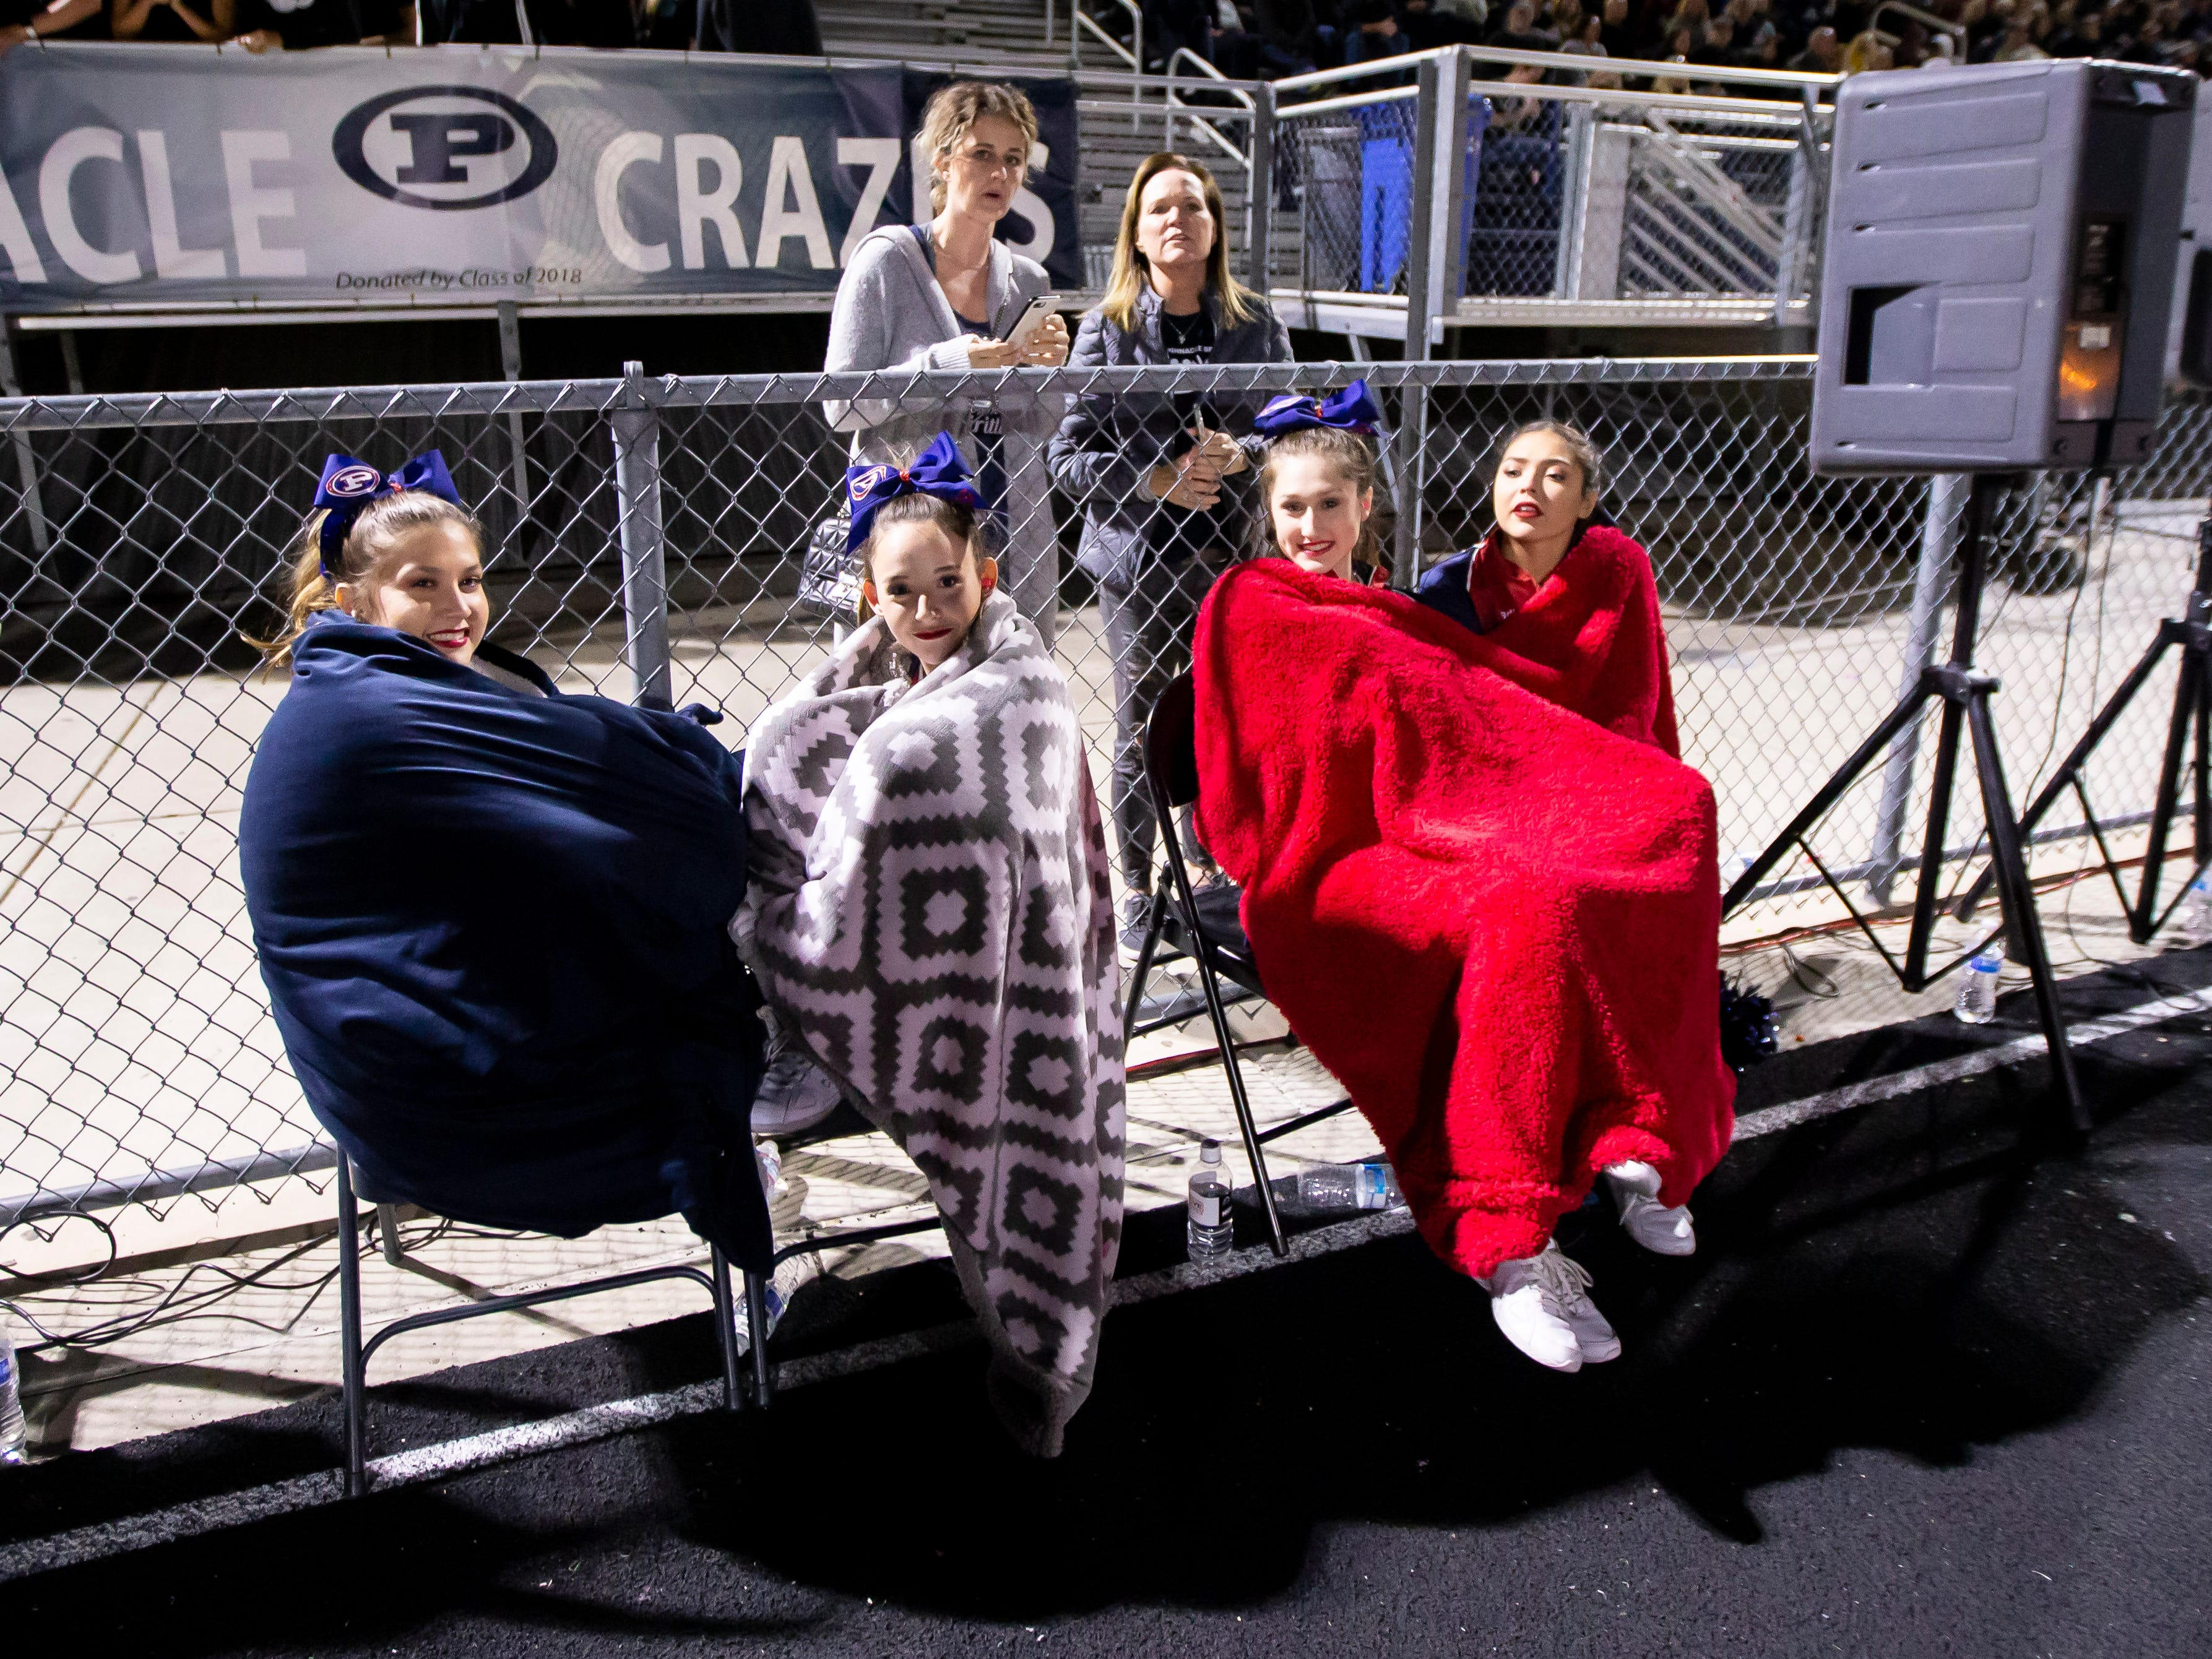 Pinnacle cheerleaders sit with blankets on a chilly night during the playoff game against the Red Mountain Mountain Lions at Pinnacle High School on Friday, November 9, 2018 in Phoenix, Arizona. #azhsfb